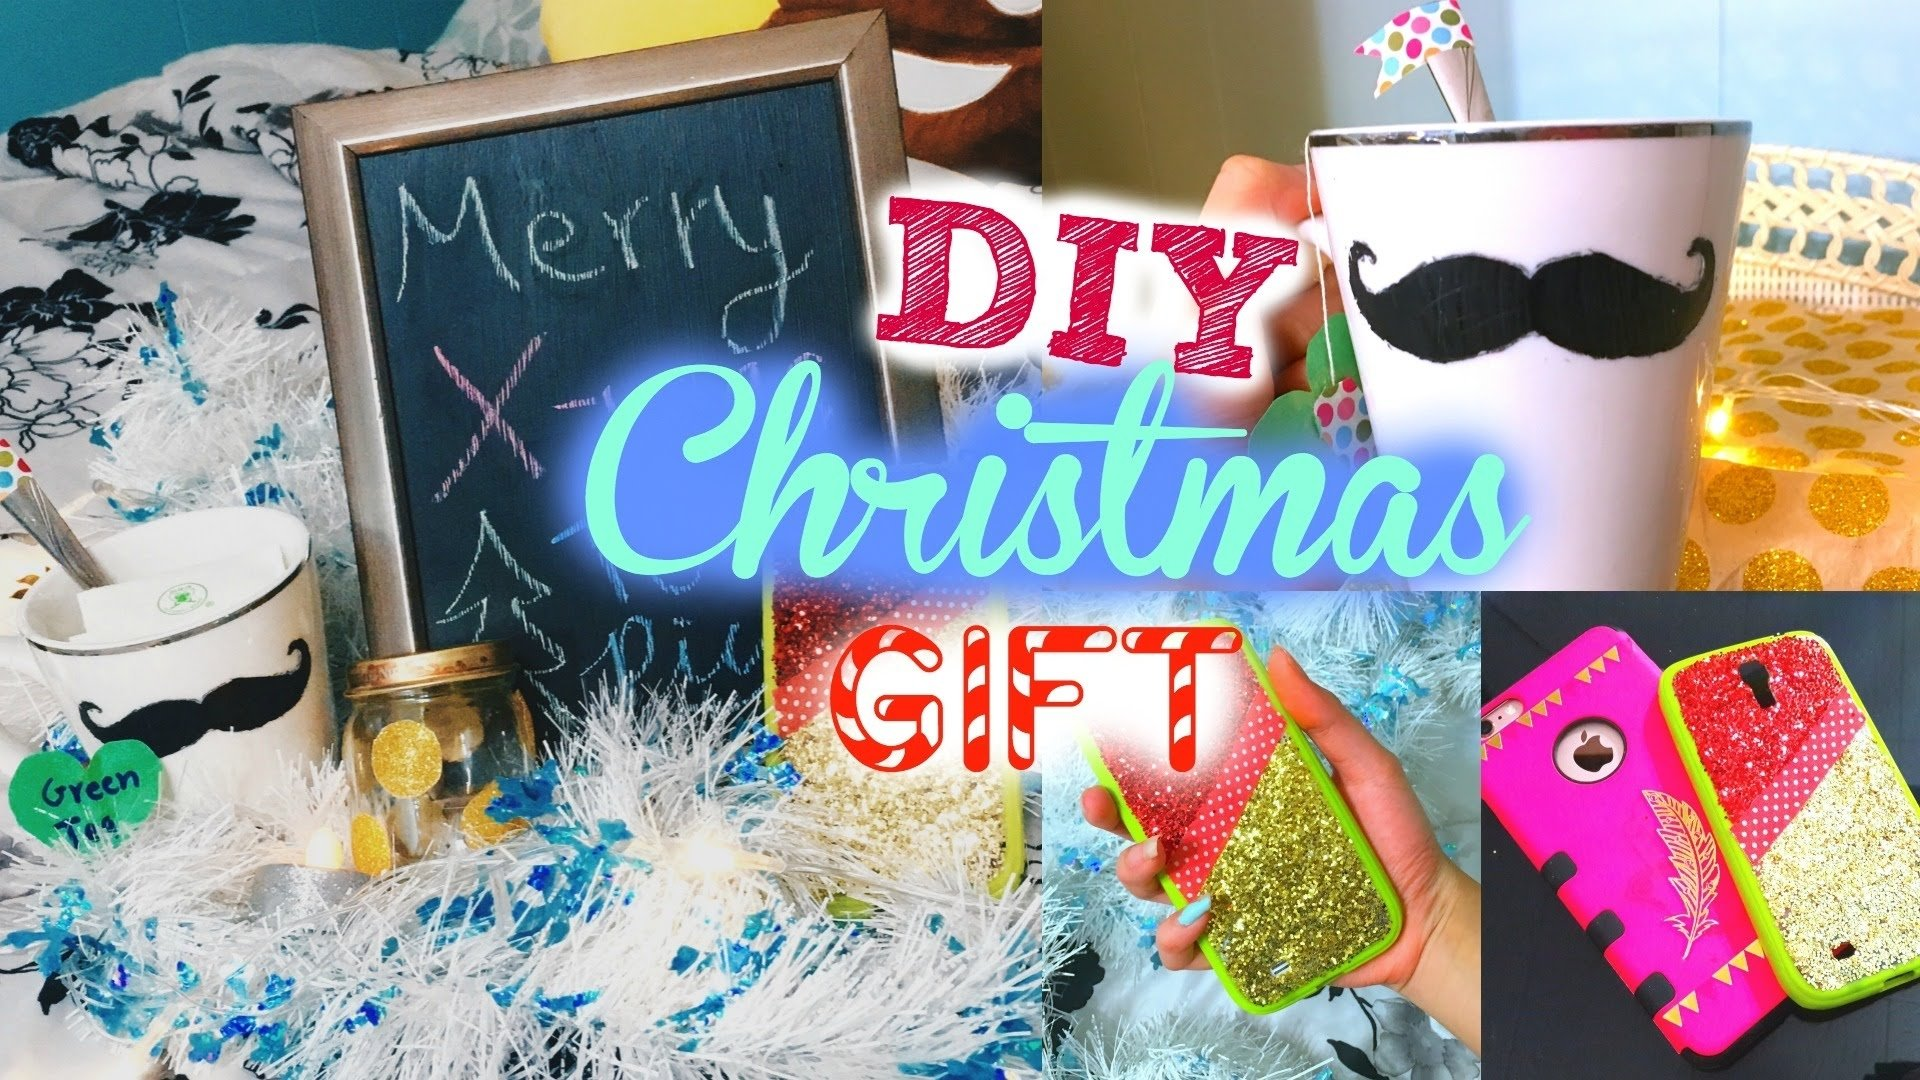 10 Stylish Last Minute Christmas Gift Ideas For Men diy last minute christmas gifts for mom and dad home decorating 1 2020